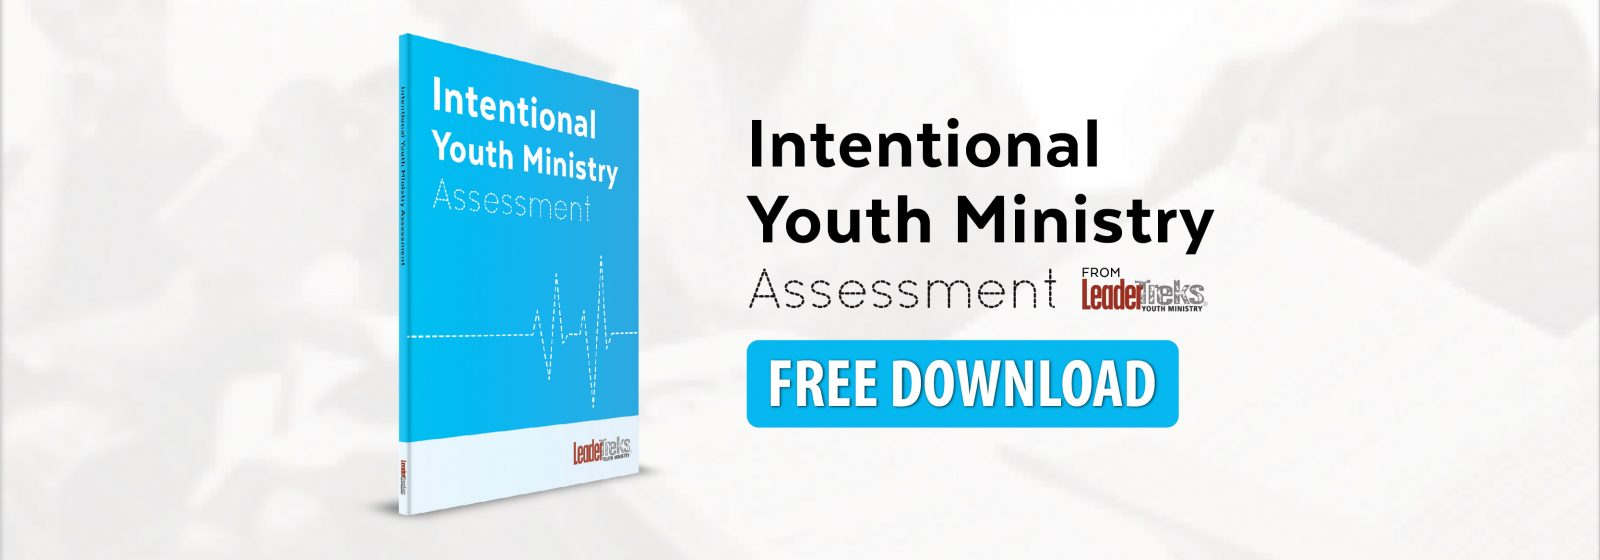 intentional youth ministry assessment